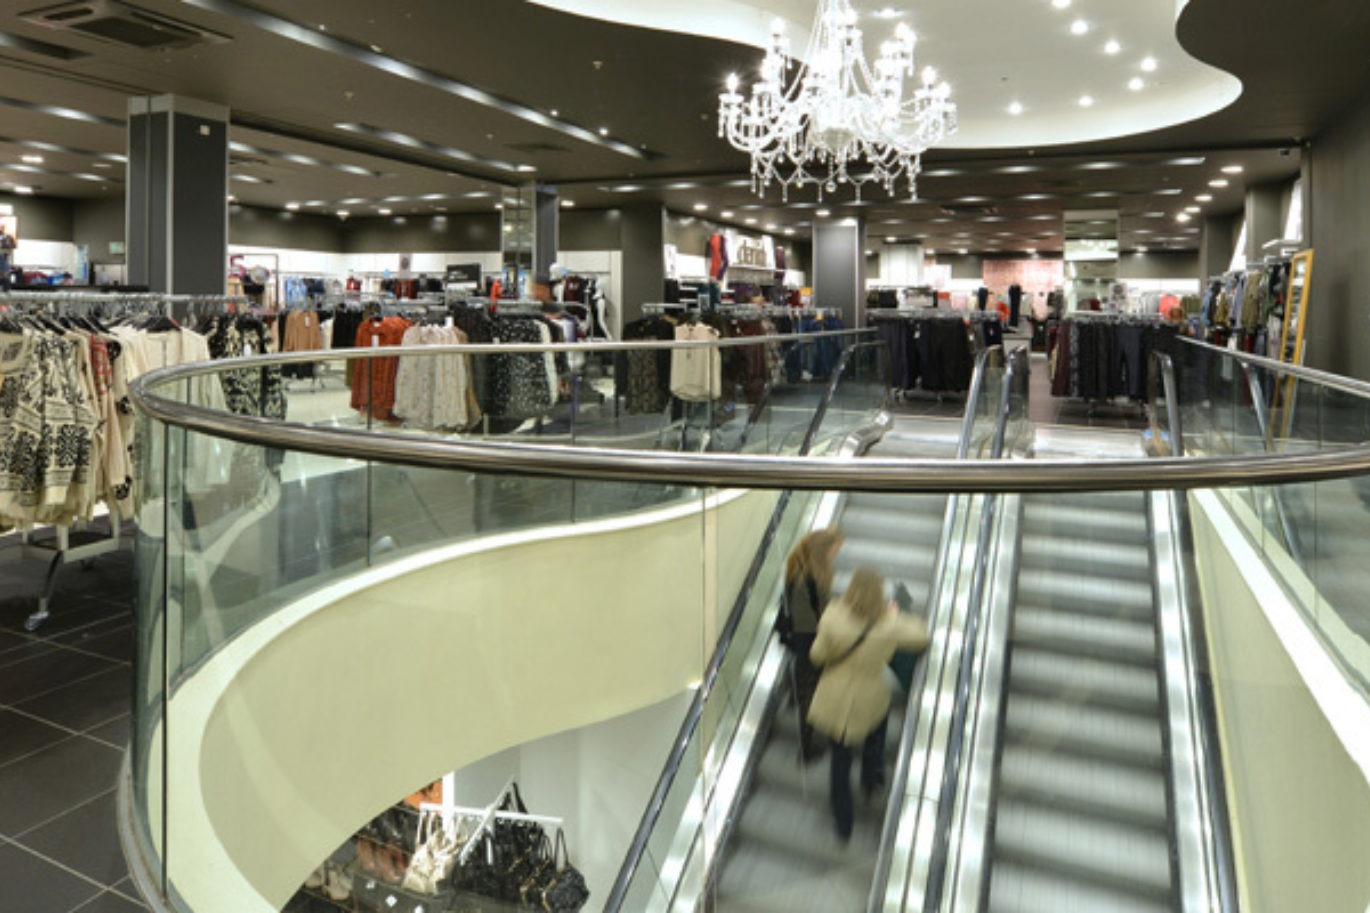 New Look  - High Street Fit Out For a Large Retail Chain